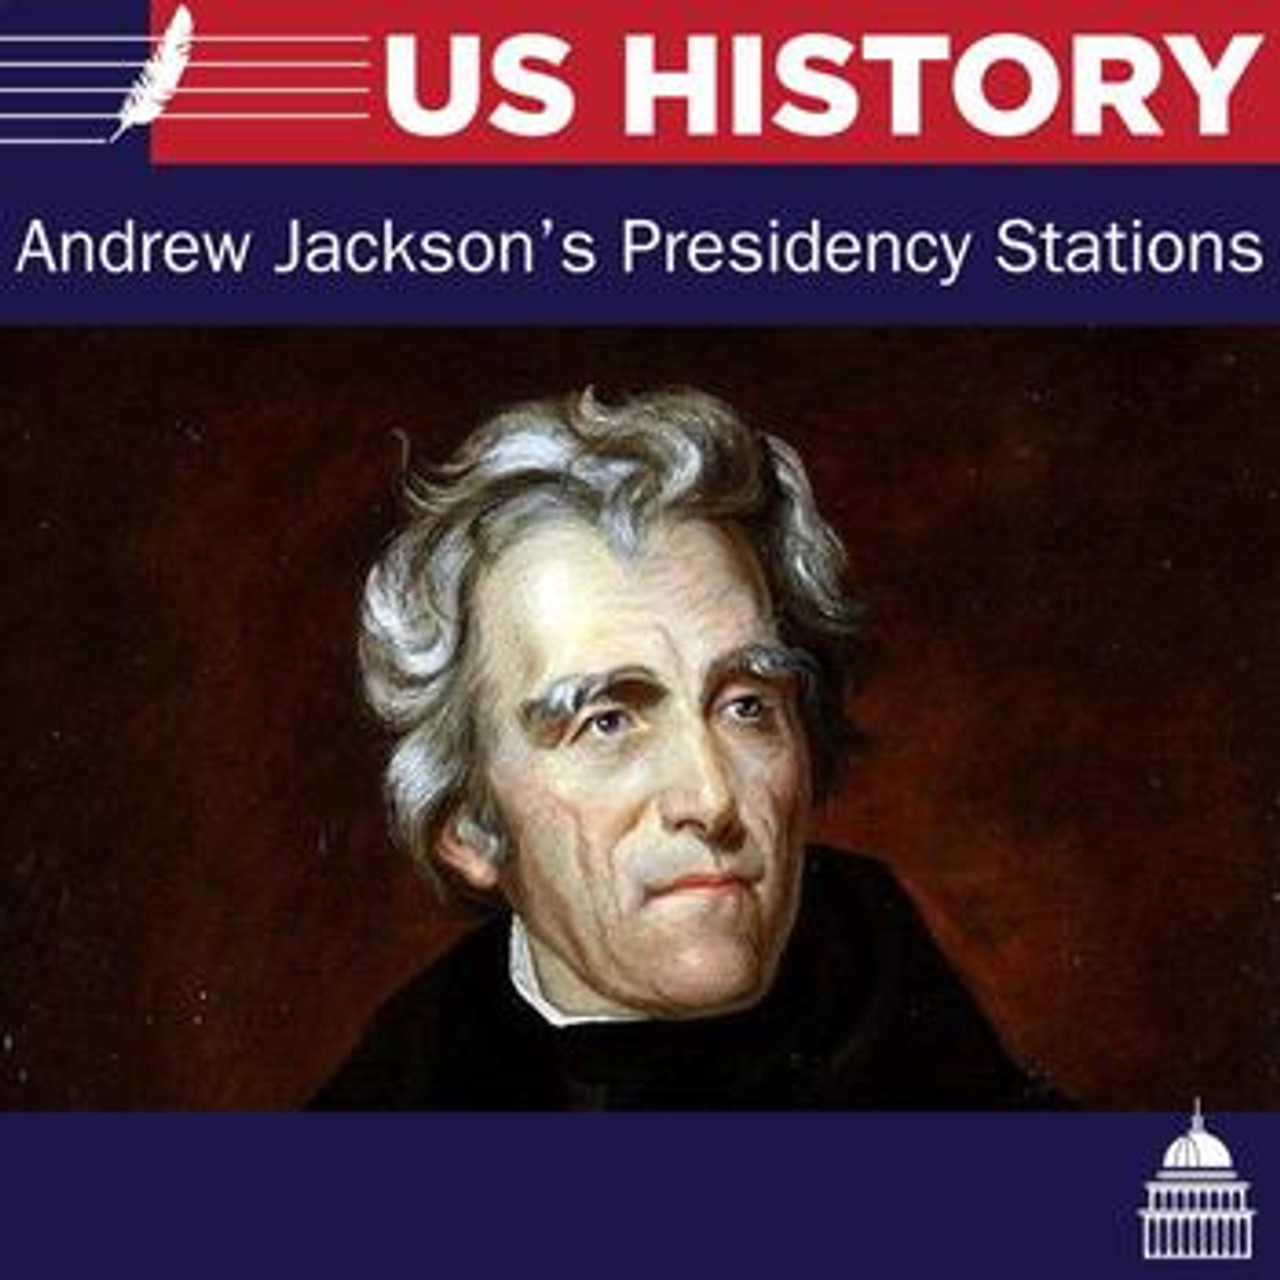 medium resolution of Andrew Jackson Presidency - 6 Stations Lesson - Amped Up Learning